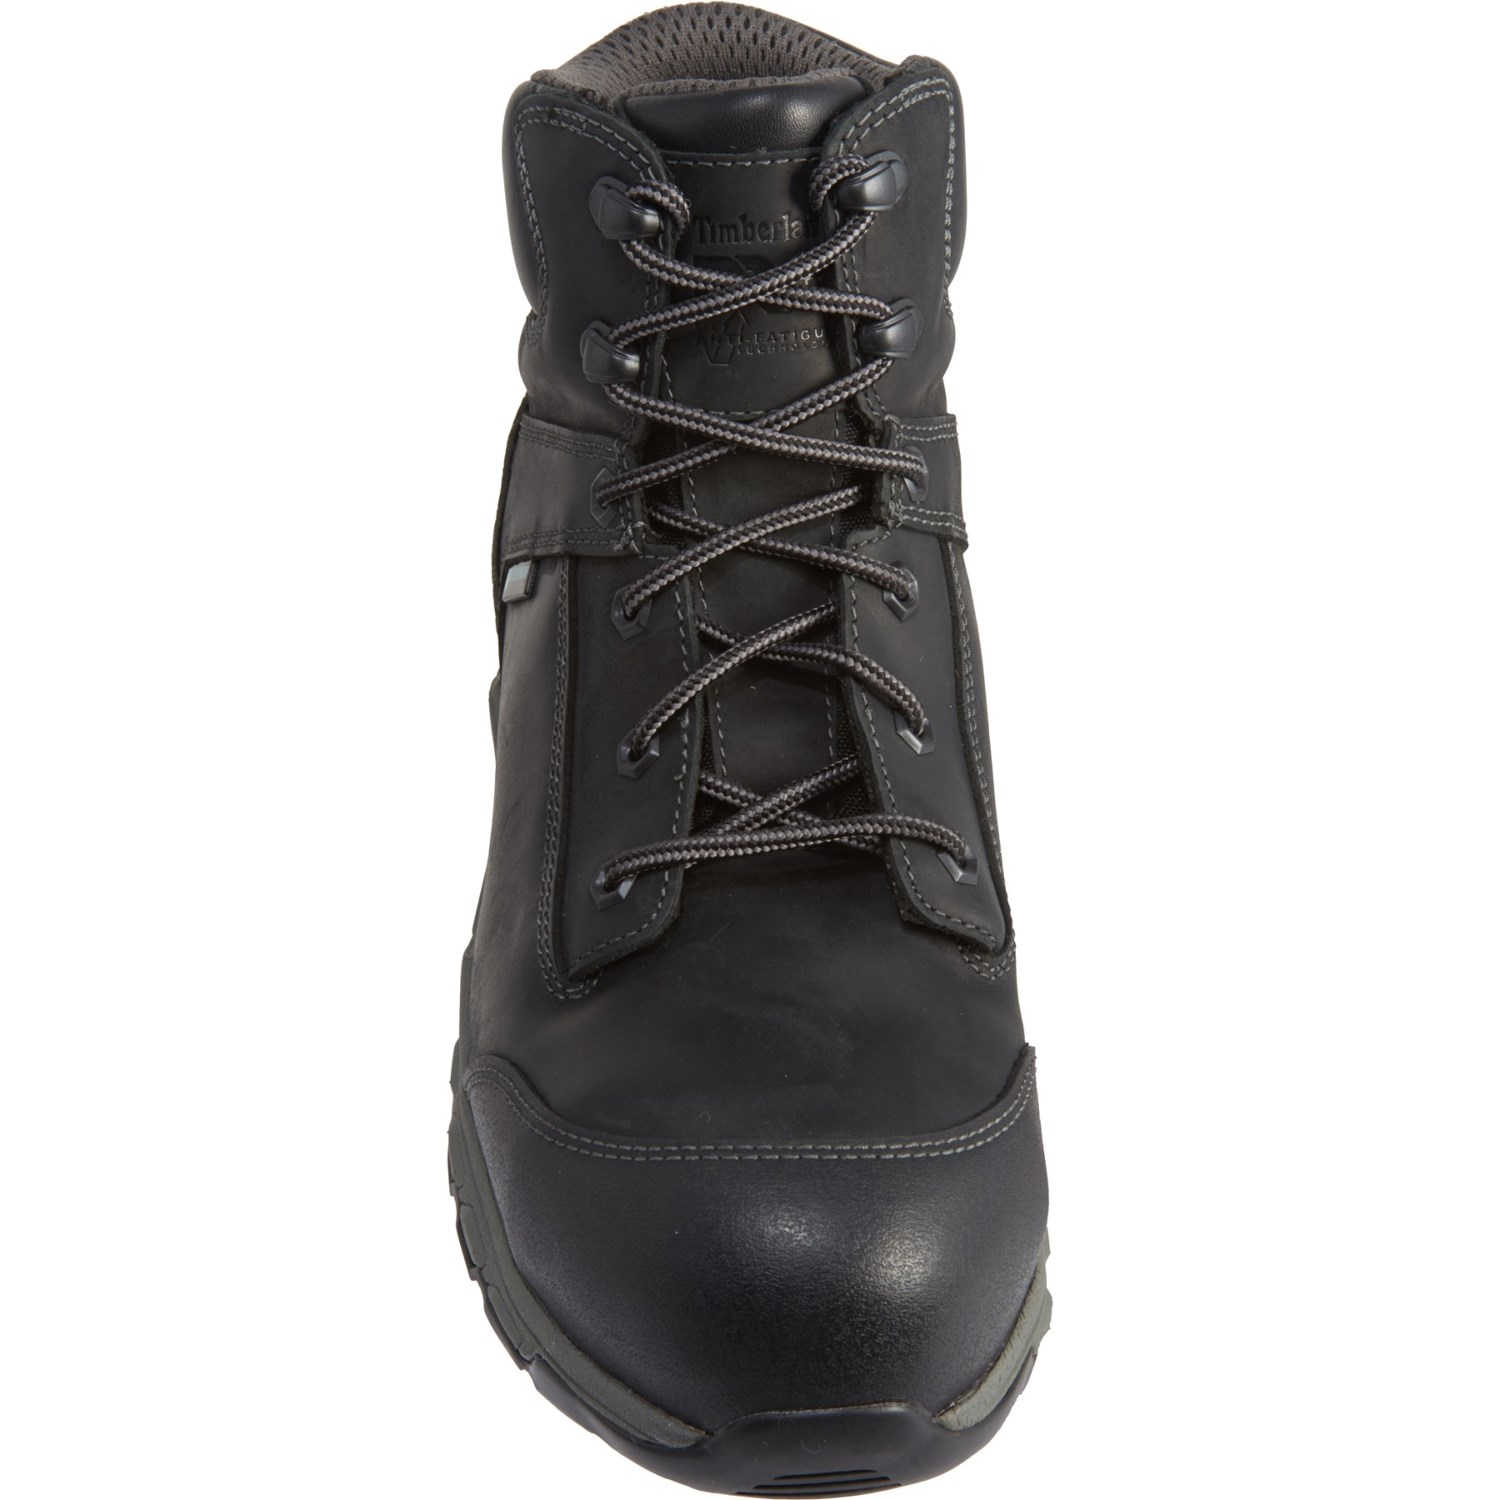 "Timberland Pro 6"" Hypercharge Work Boots Waterproof, Composite Safety Toe, Leather (For Men)"